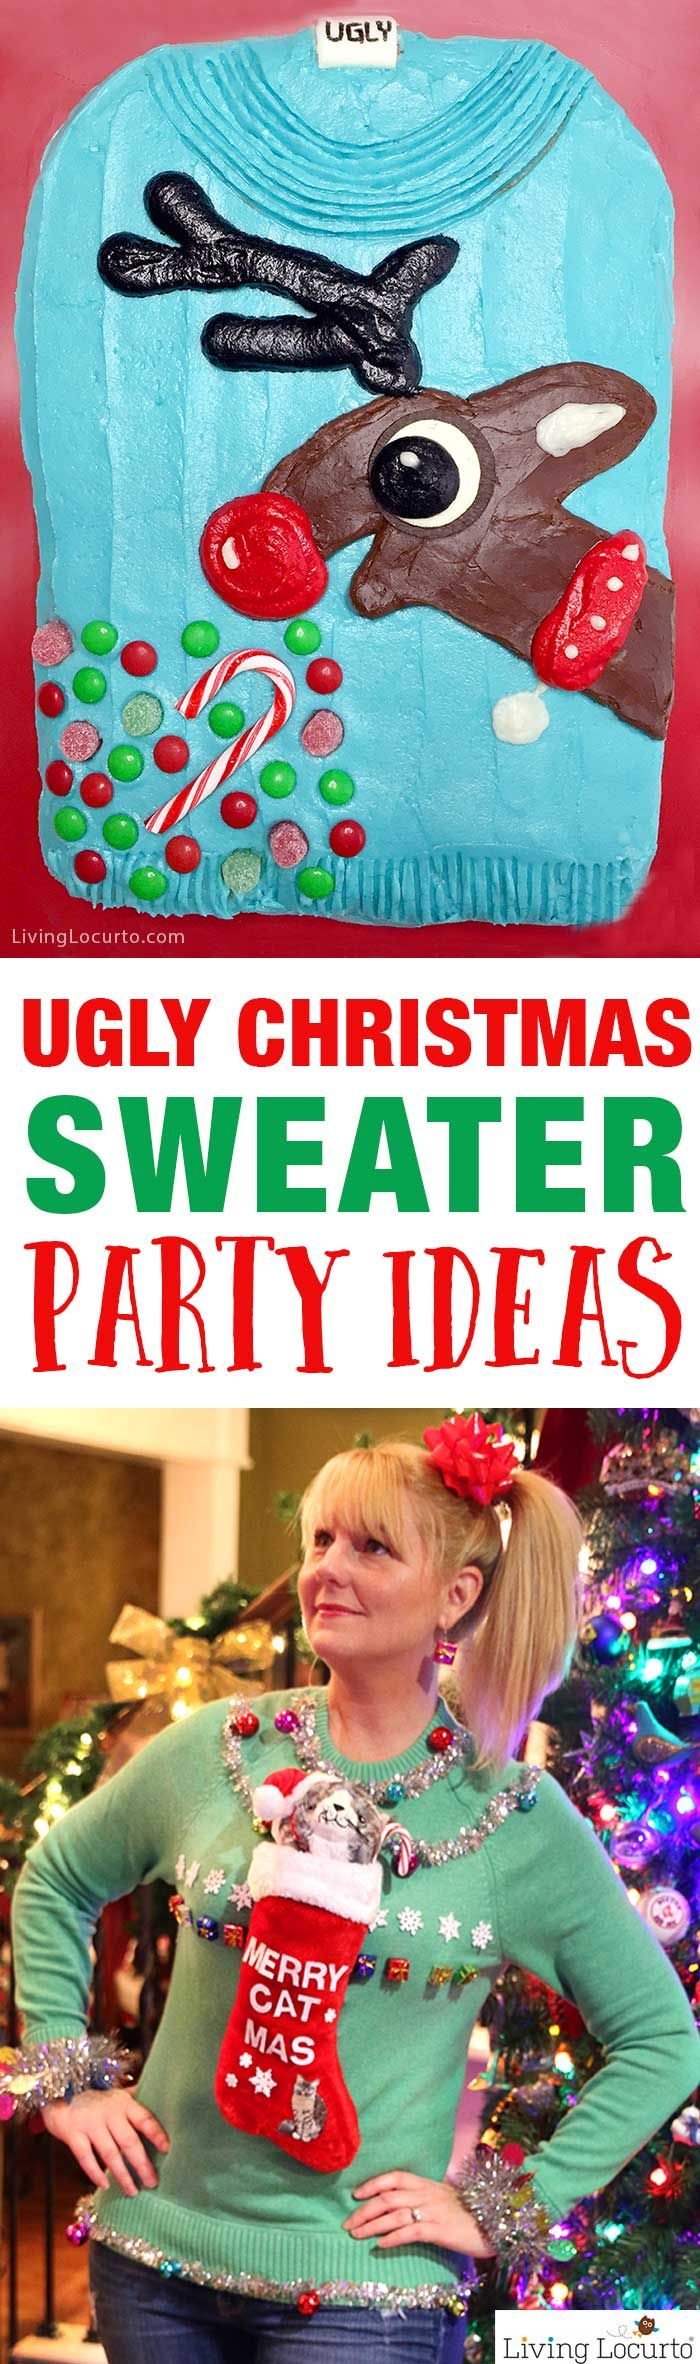 Christmas Sweater Party Ideas Part - 50: Funny Ugly Christmas Sweater Party Ideas! How To Make A Reindeer Ugly Christmas  Sweater Cake And More. Funny Dessert Recipe Idea For A Tacky Ugly Christmas  ...